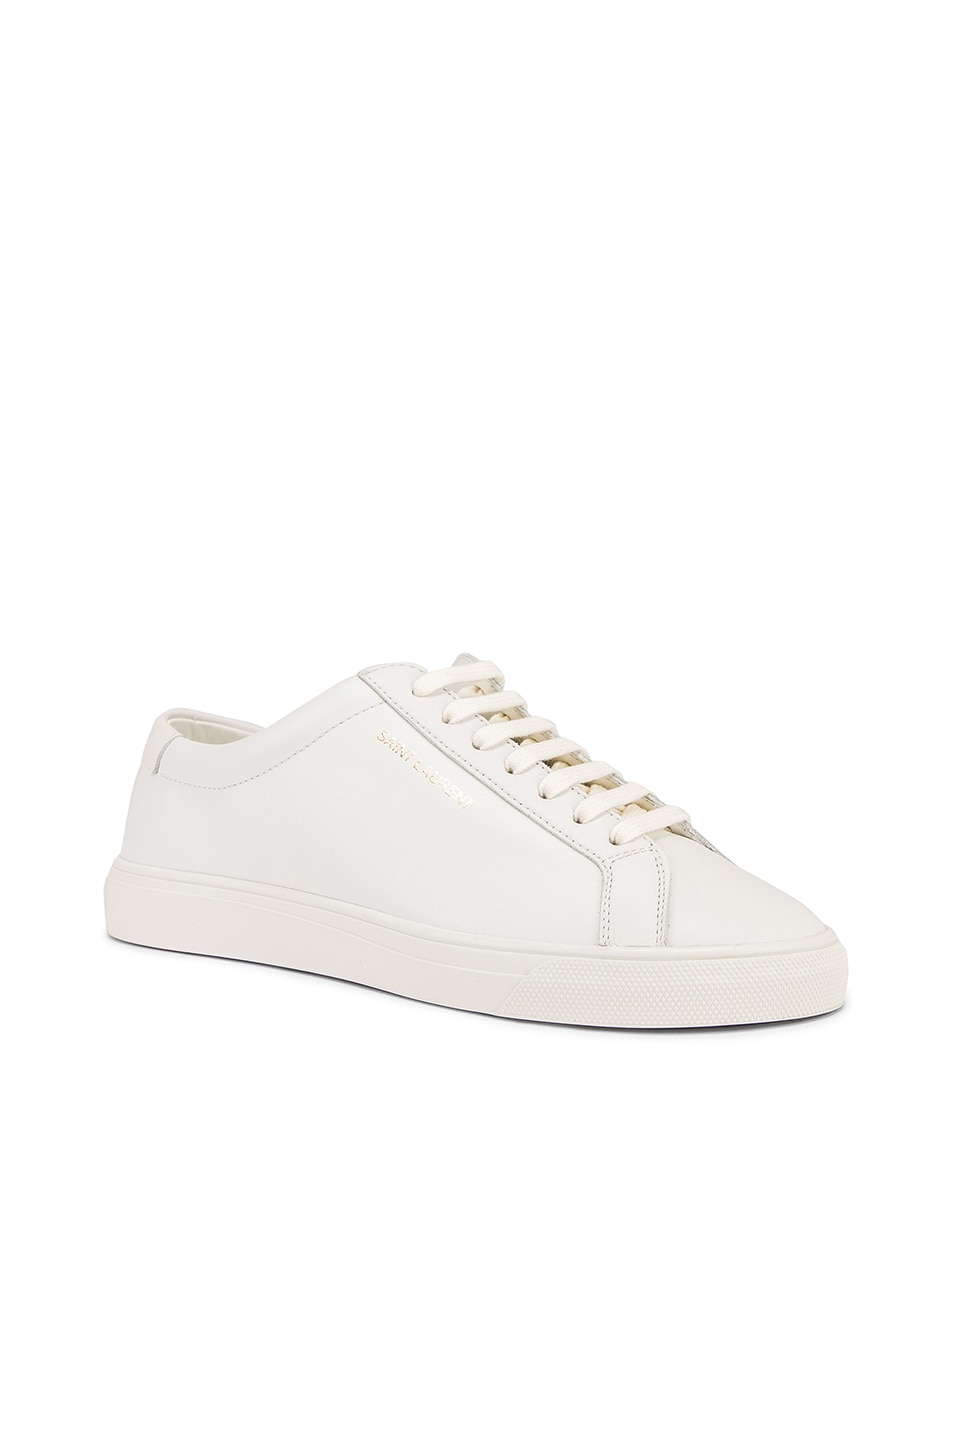 Image 2 of Saint Laurent Andy Sneaker in White